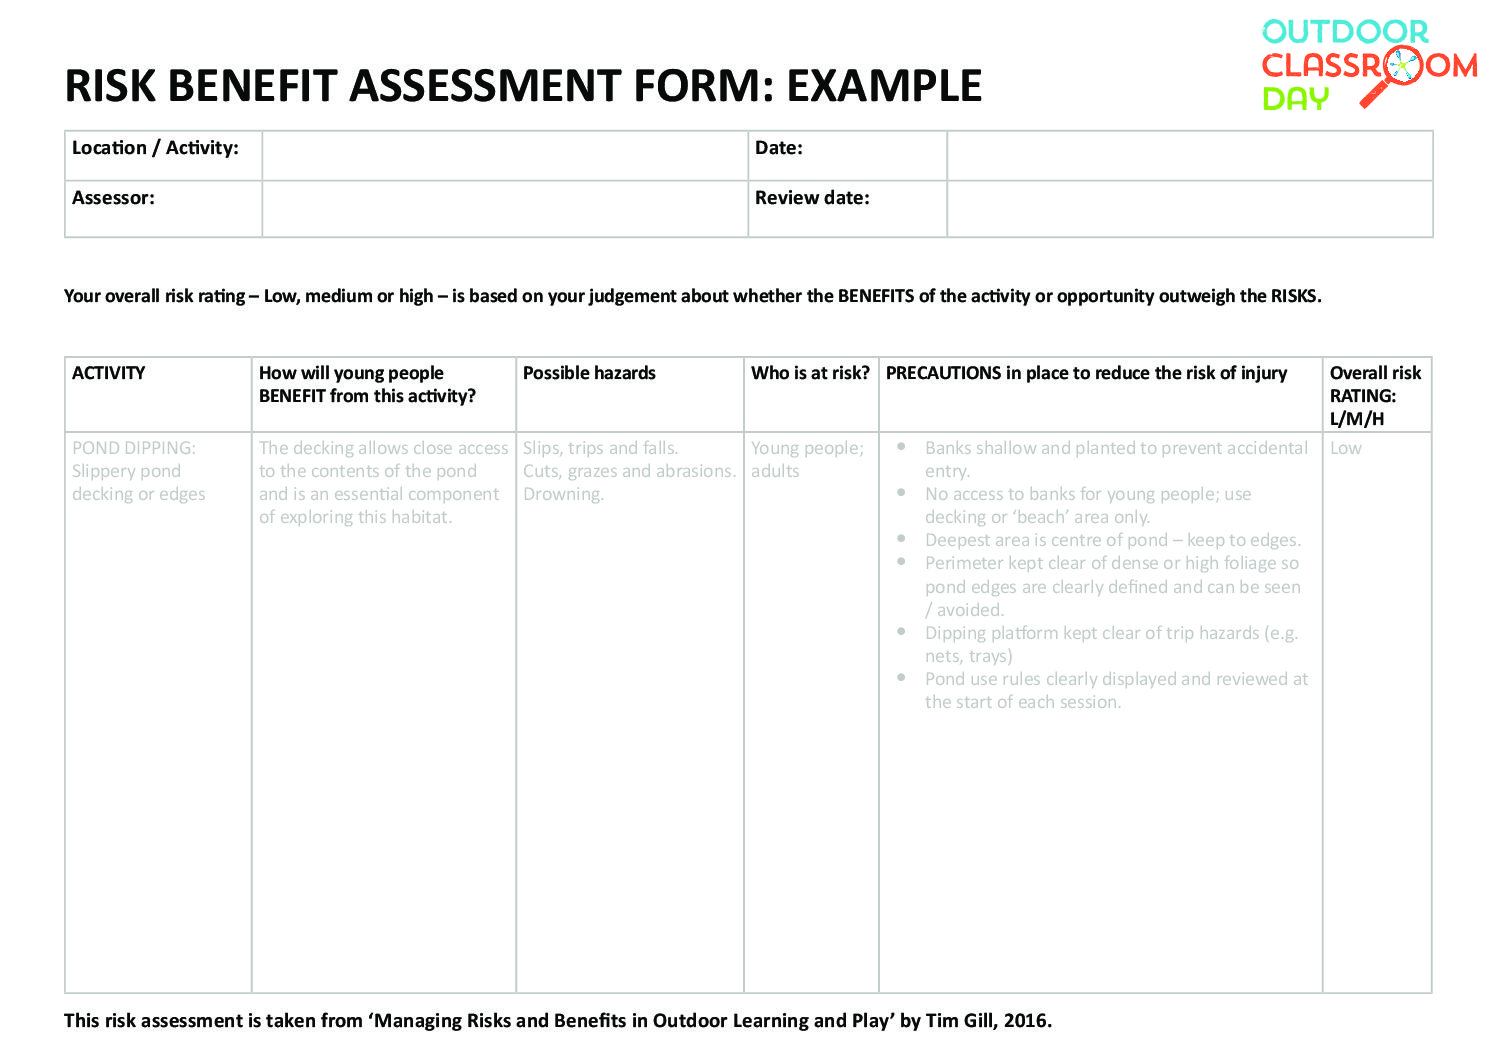 AUS - Risk assessment form - Outdoor Classroom Day Australia